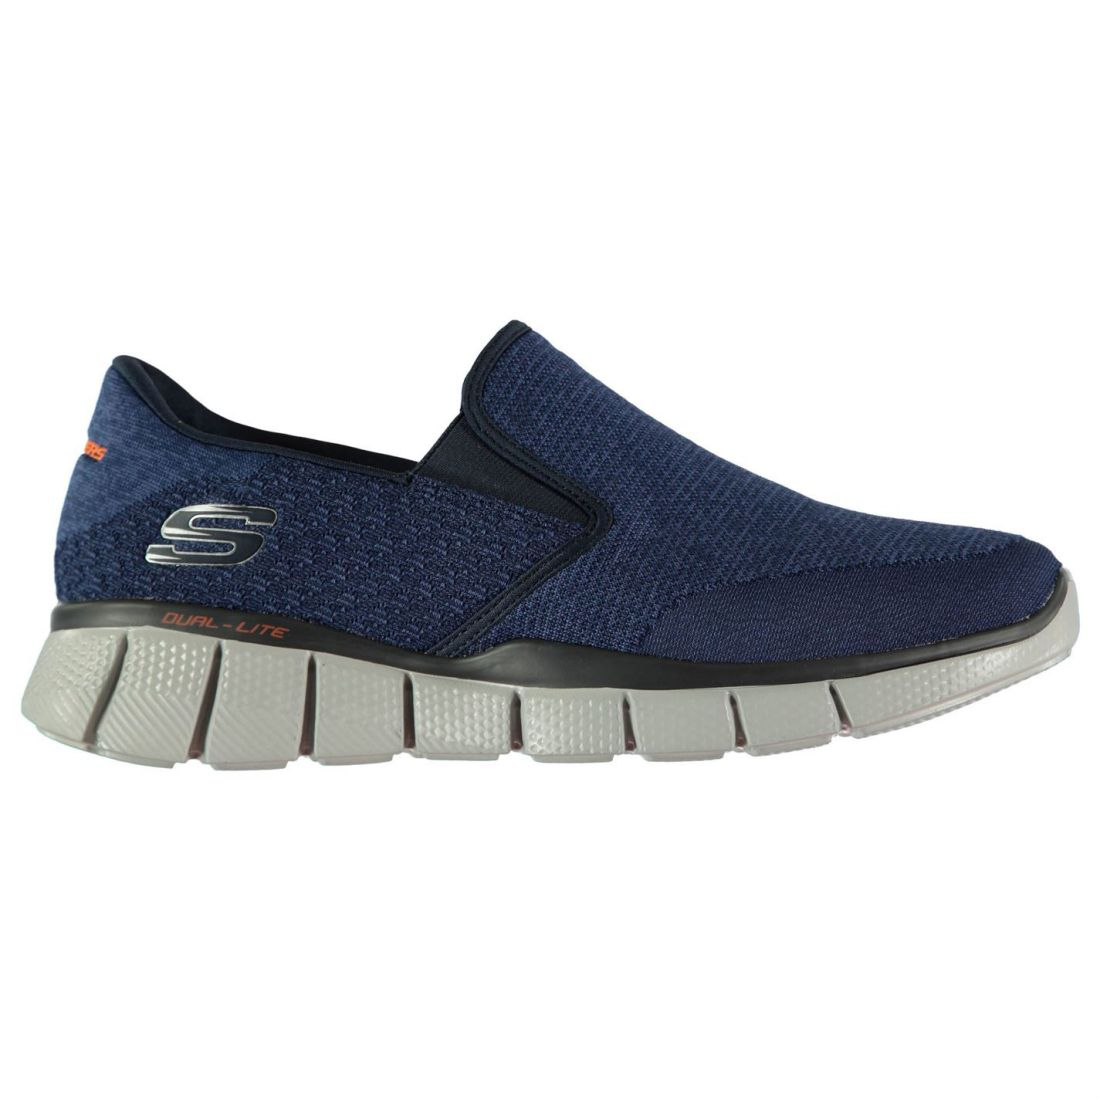 Skechers Equaliser 2 2 2 Turnschuhe Mens Gents Slip On Ventilated Knit Knitwear Memory 8141f0